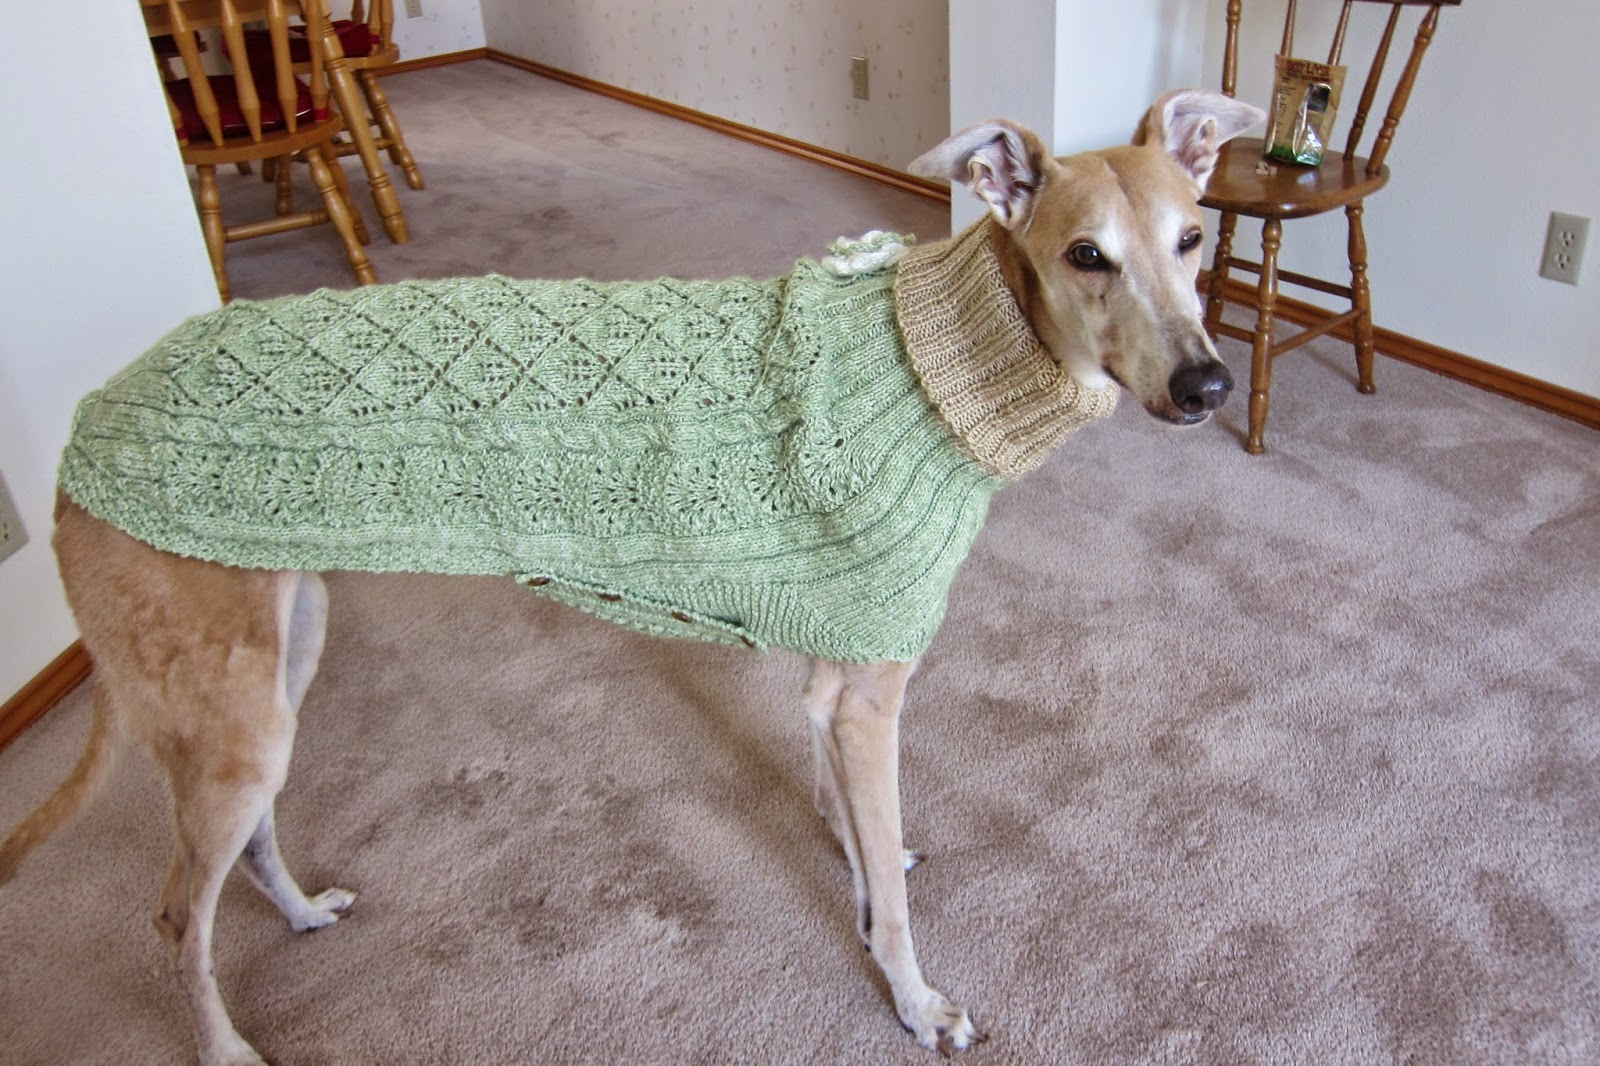 Knitting Patterns For Greyhound Sweaters : Greyhound Knit Sweaters: August 2014